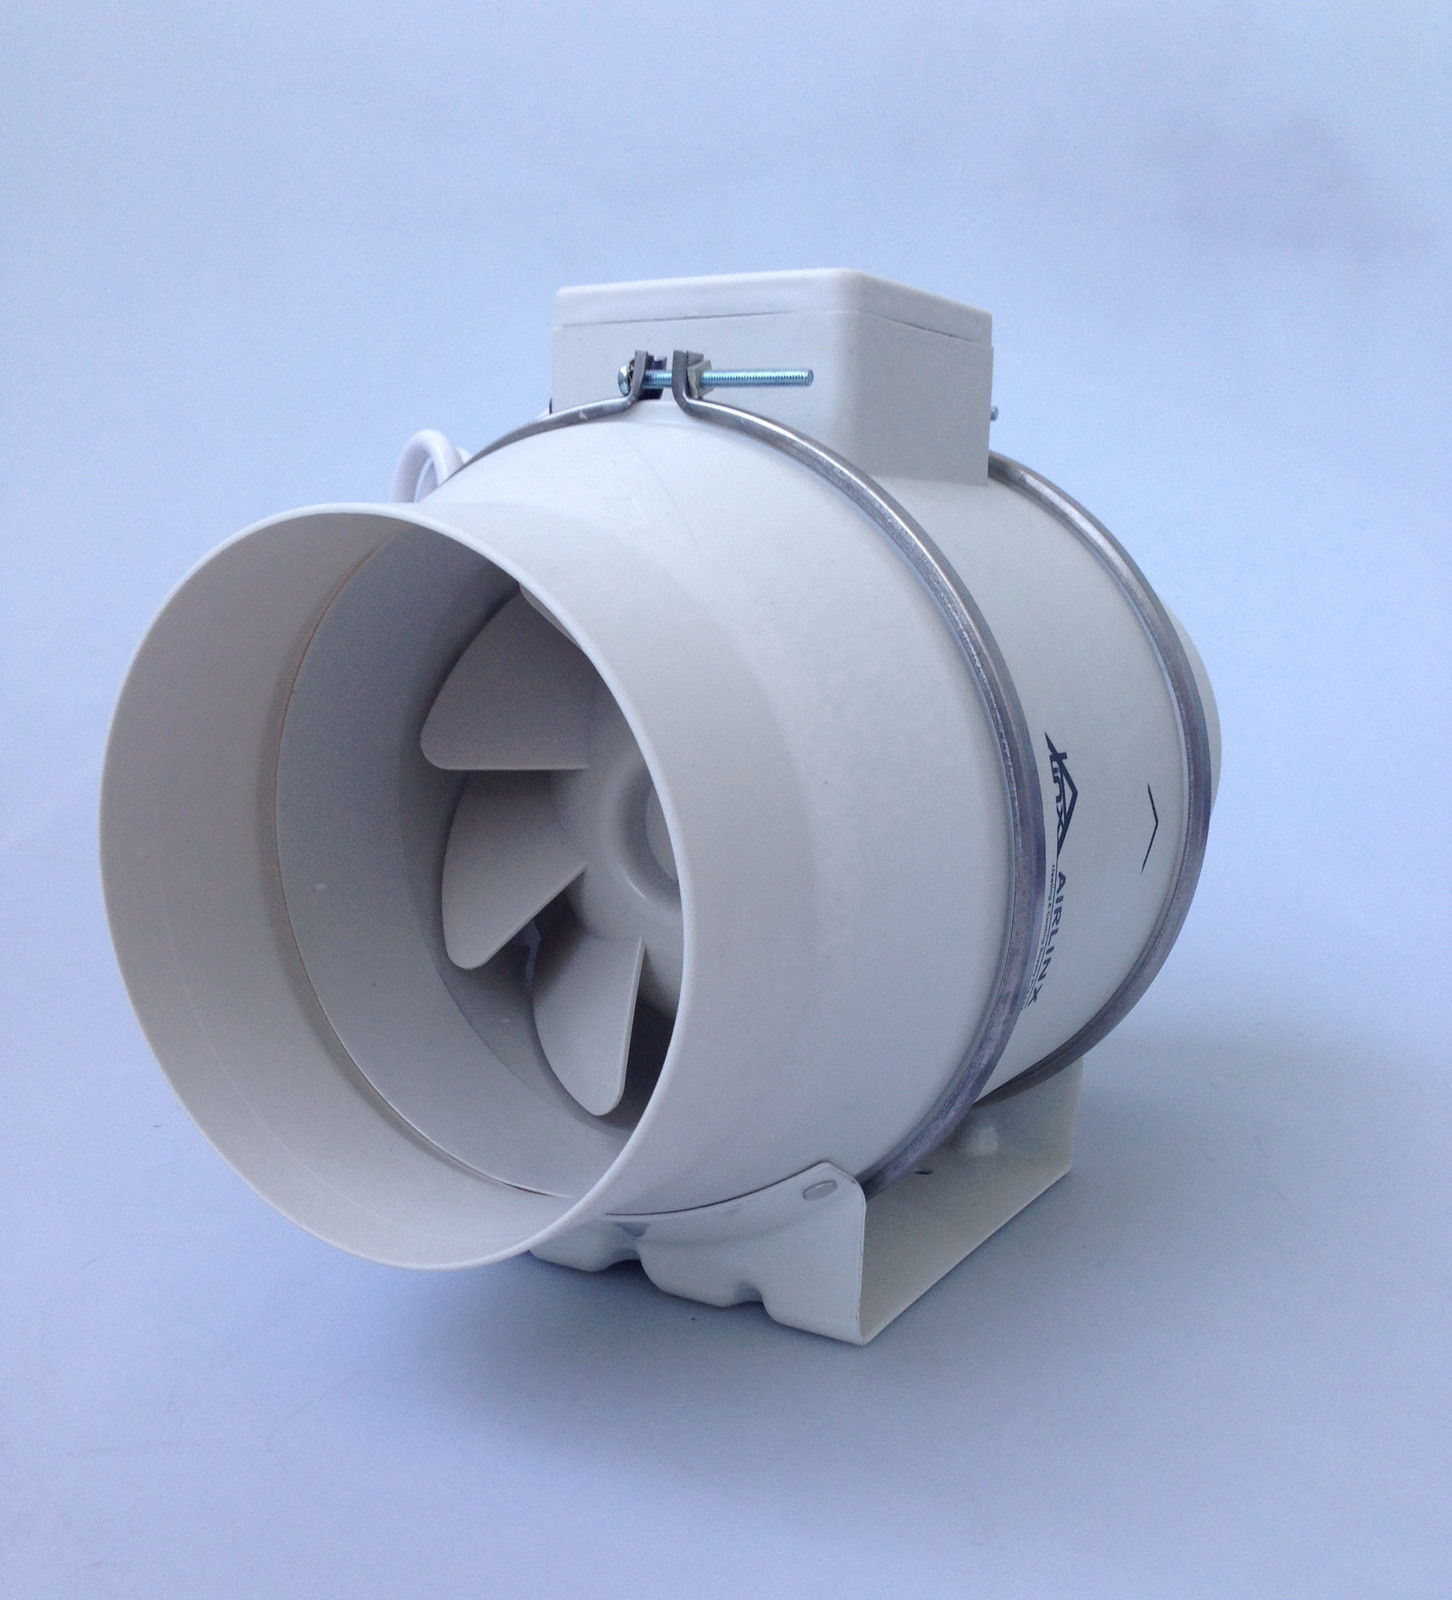 150mm 6 turbo fan 2 speed inline fan industrial supply for 6 bathroom exhaust fan